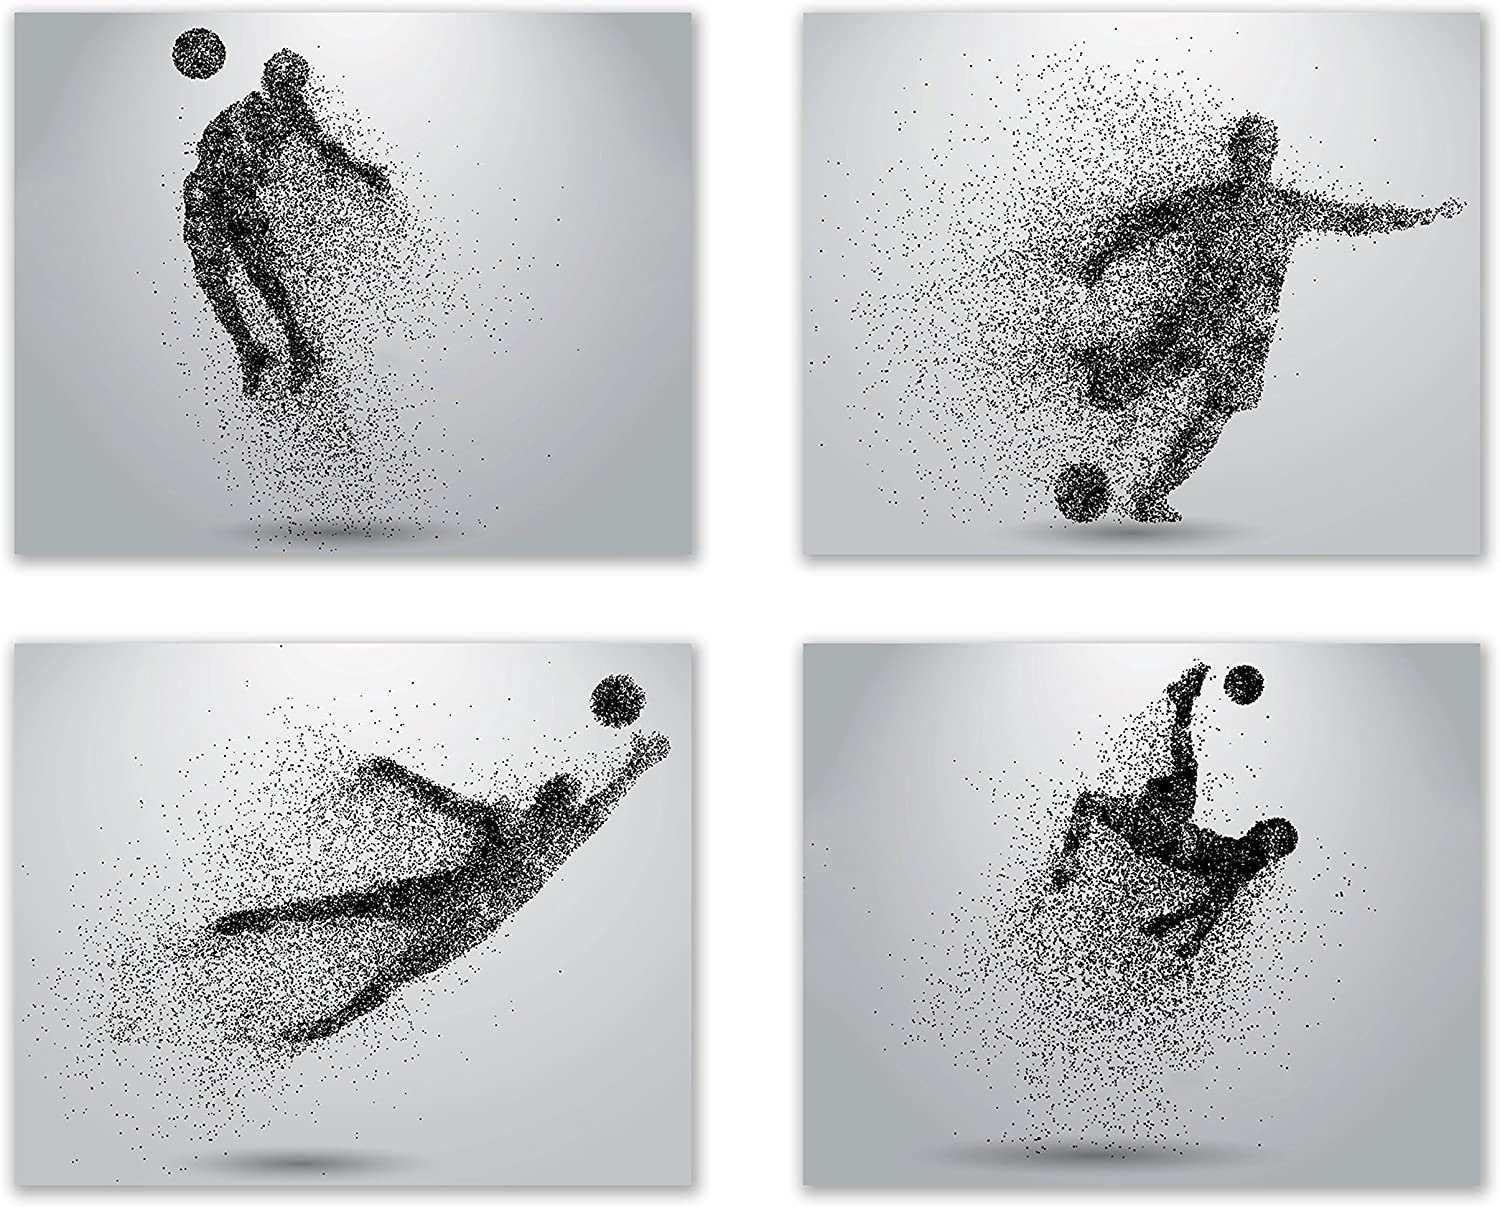 Summit Designs Soccer Wall Art Prints - Particle Silhouette – Set of 4 (8x10) Poster Photos - Man Cave- Bedroom Decor